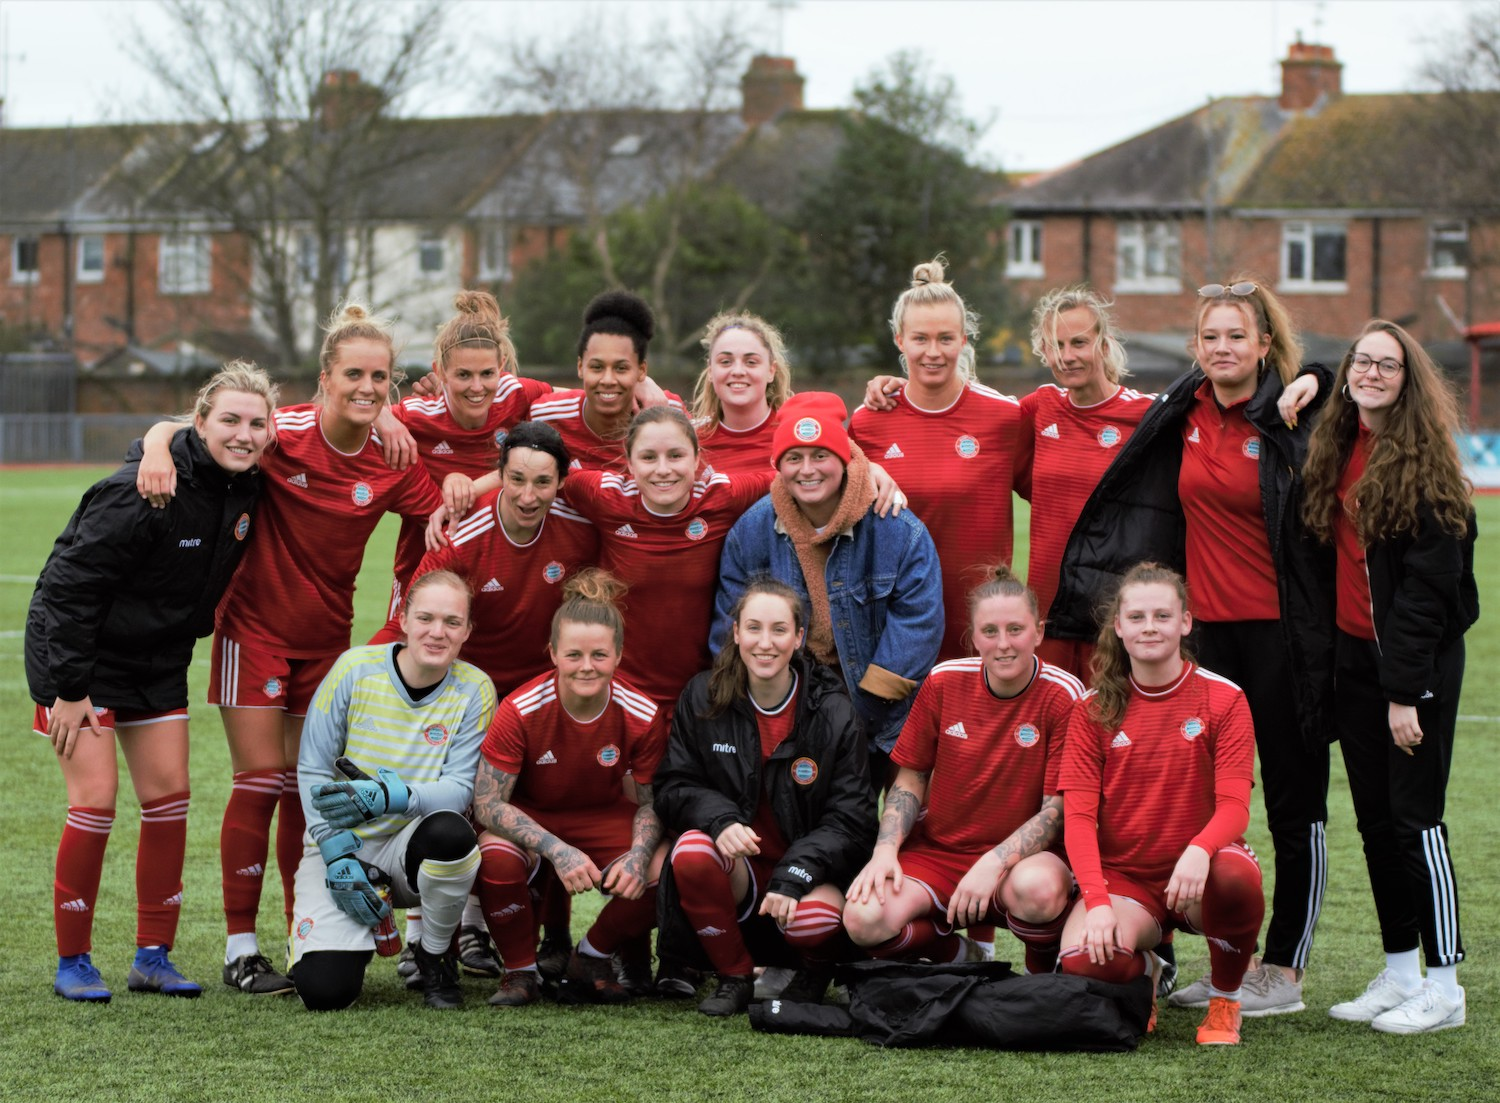 Read the full article - Reds produce a five-star showing to clinch promotion